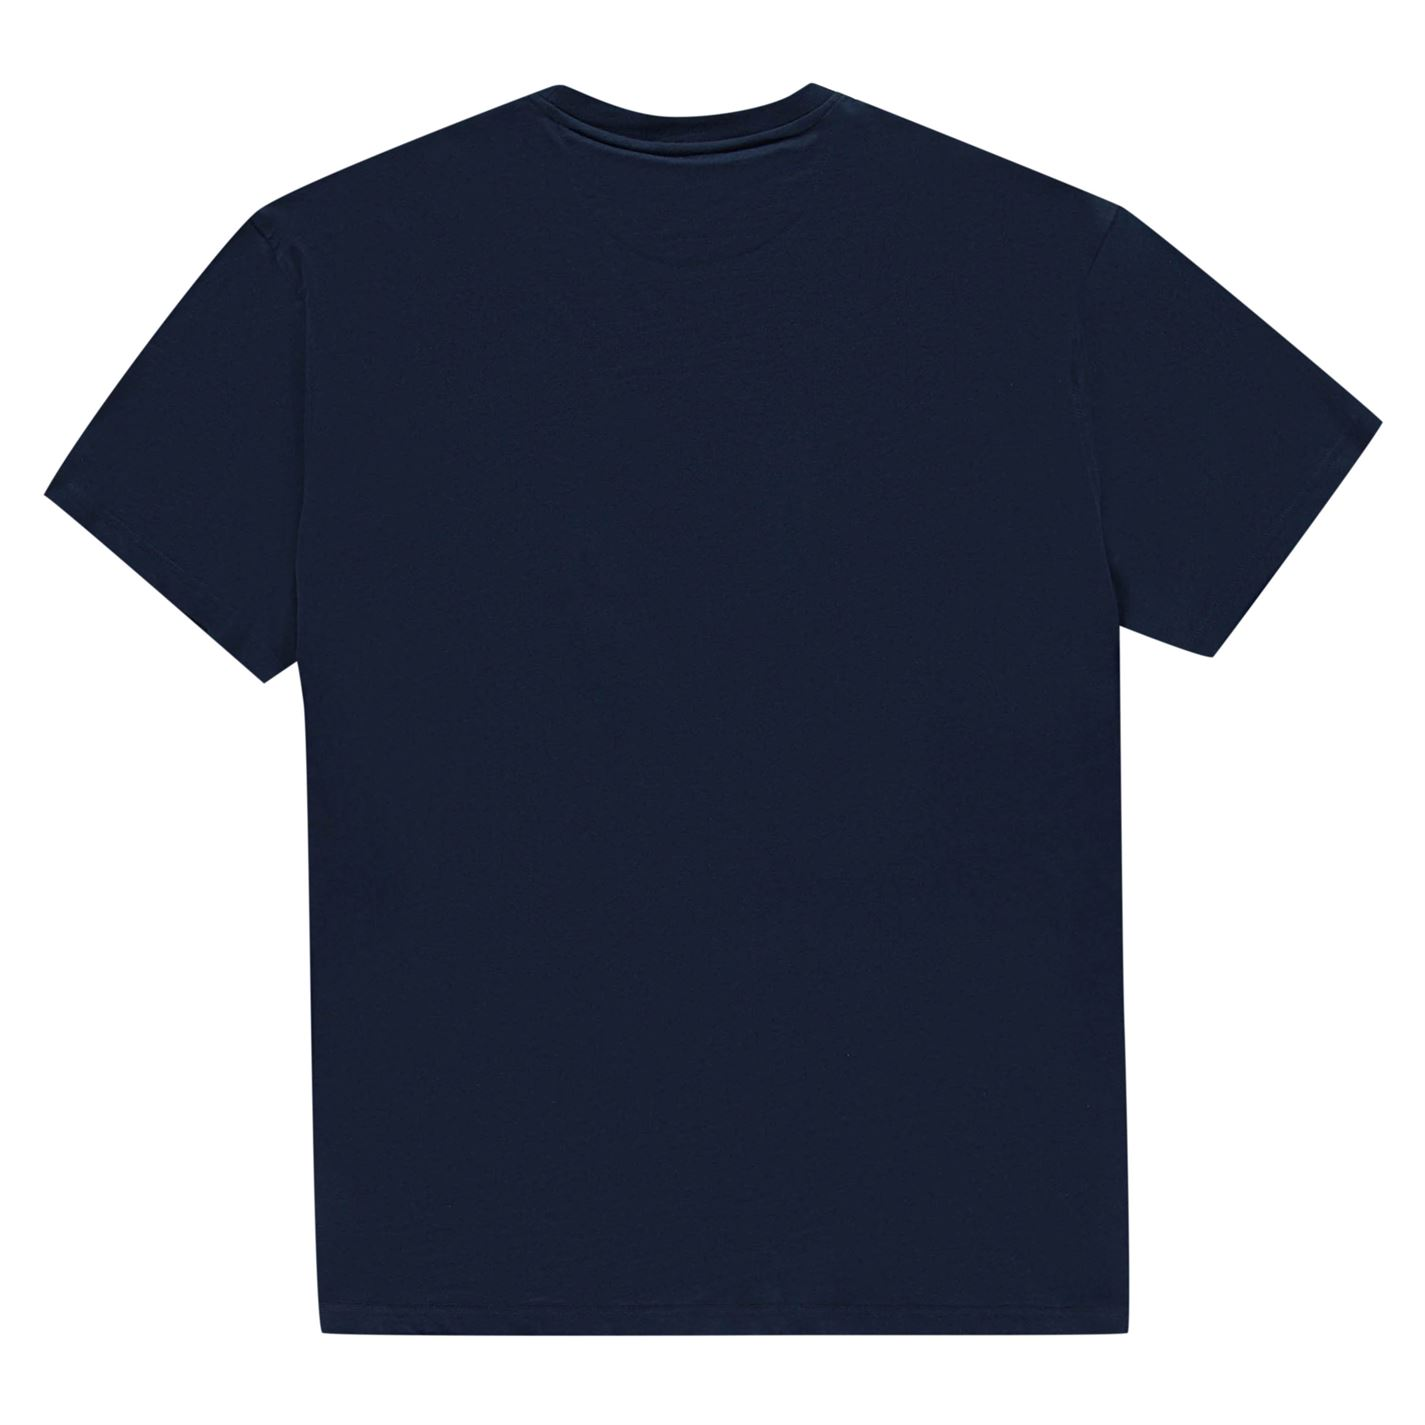 Pierre-Cardin-Mens-ExtraLarge-Single-Pocket-T-Shirt-Crew-Neck-Tee-Top-Short thumbnail 14